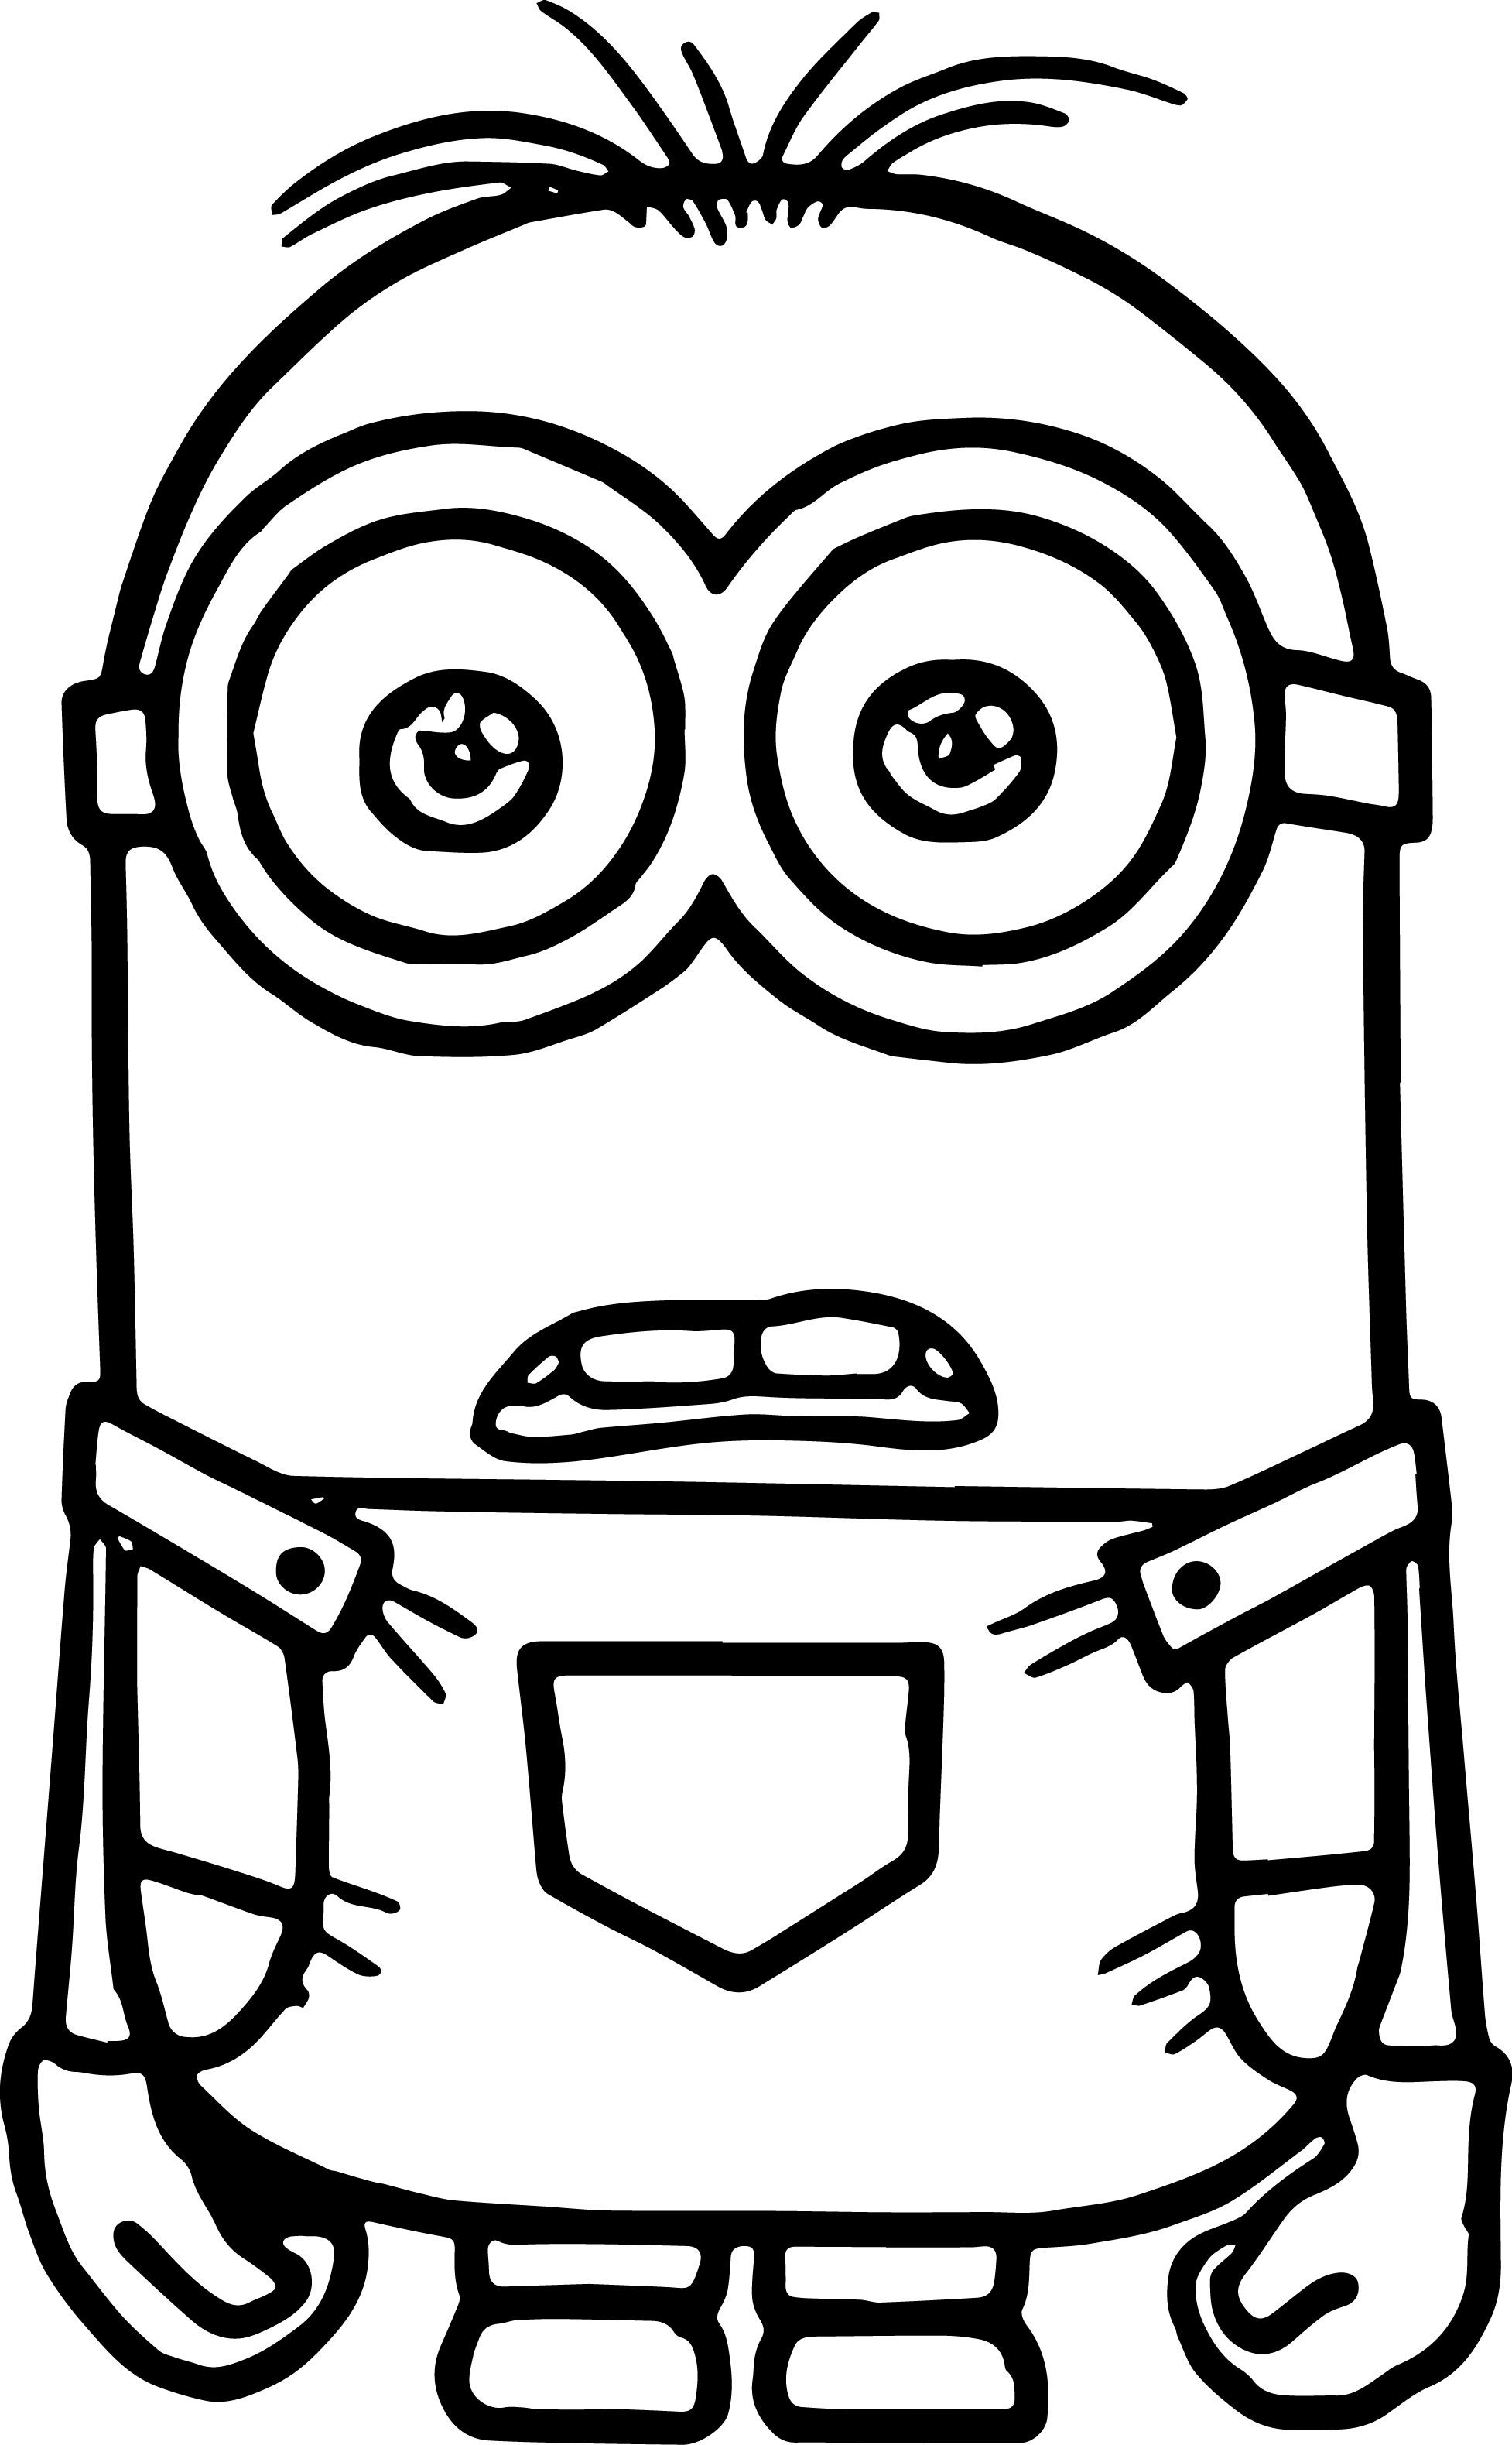 On online coloring minion - Minion Is Beatiful And Very Cute Characters You Can Find Here Minions Coloring Pages